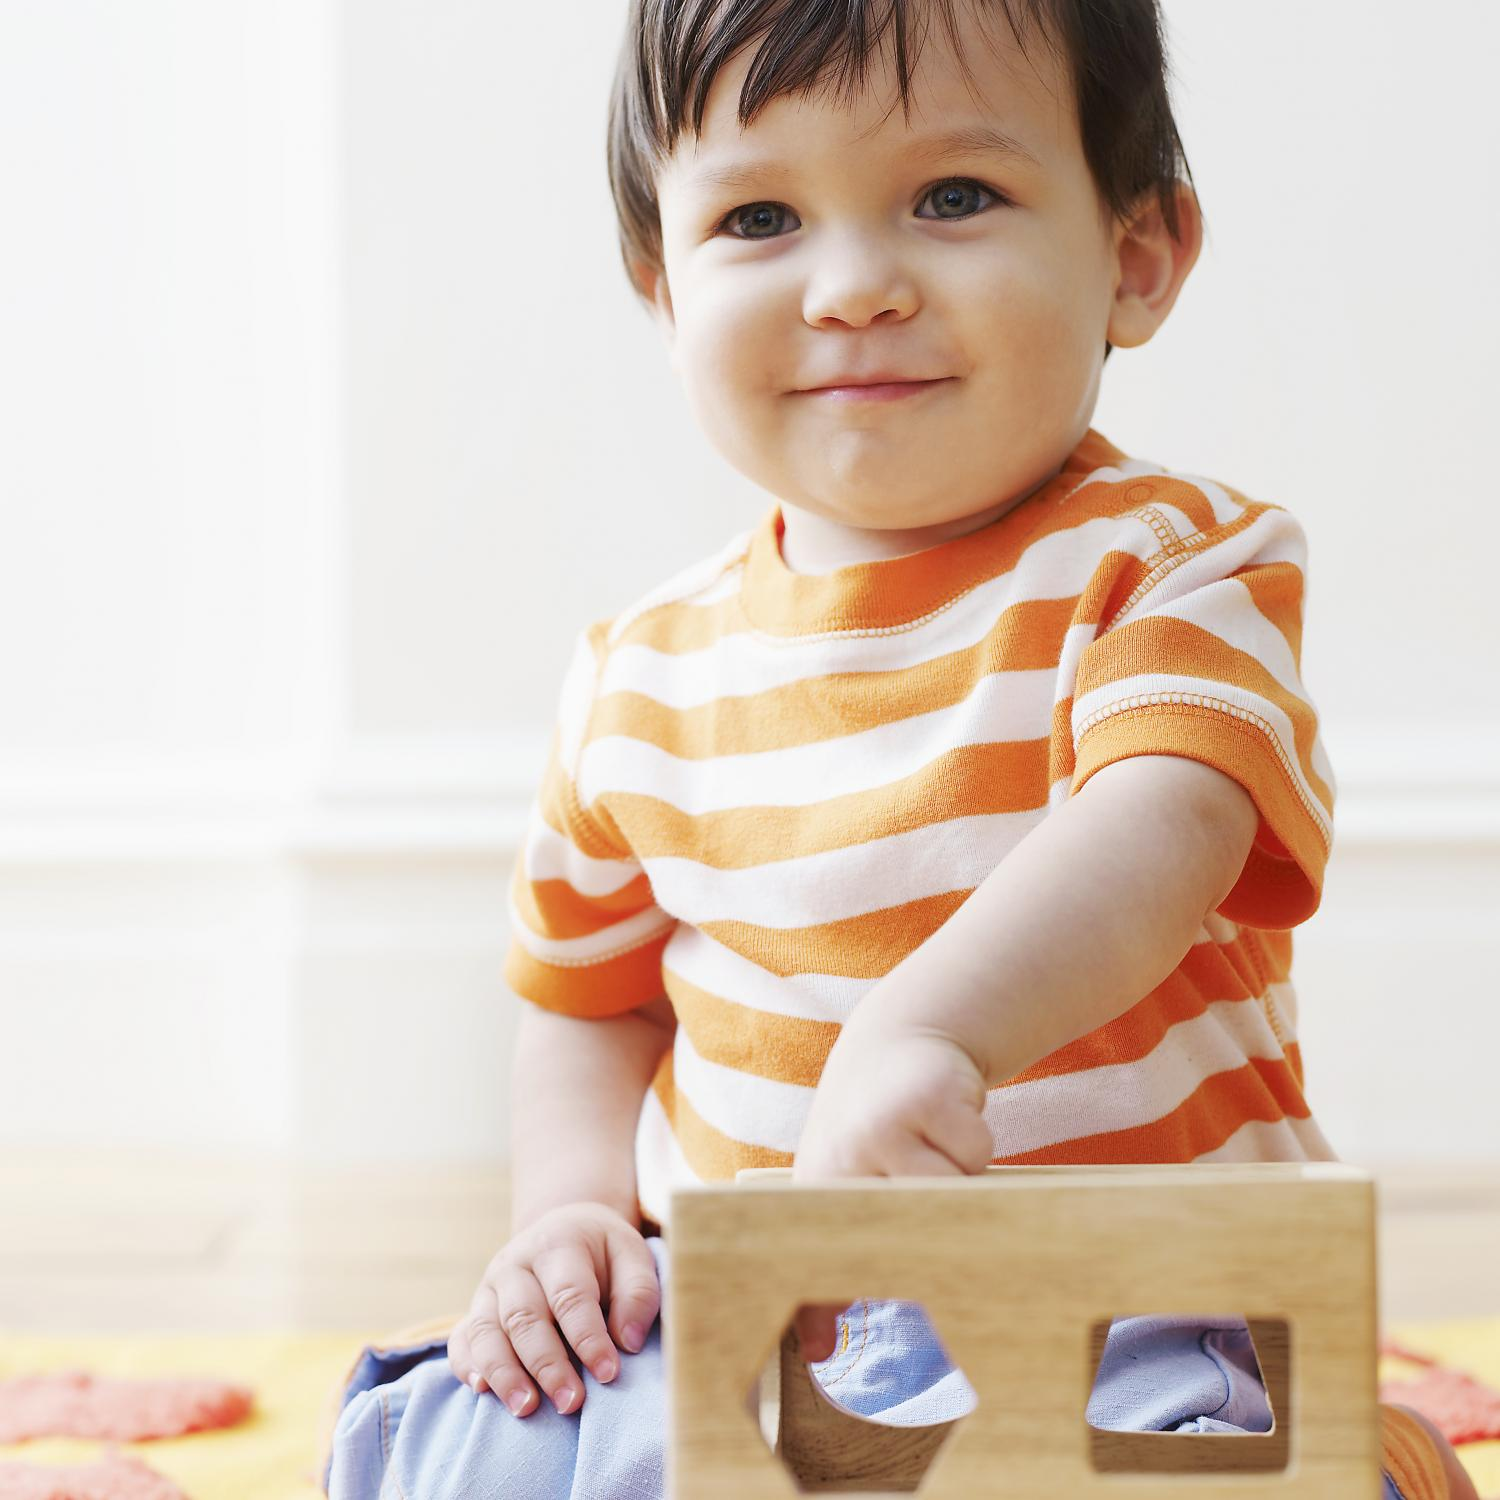 10 Reasons Play Makes Babies Smarter